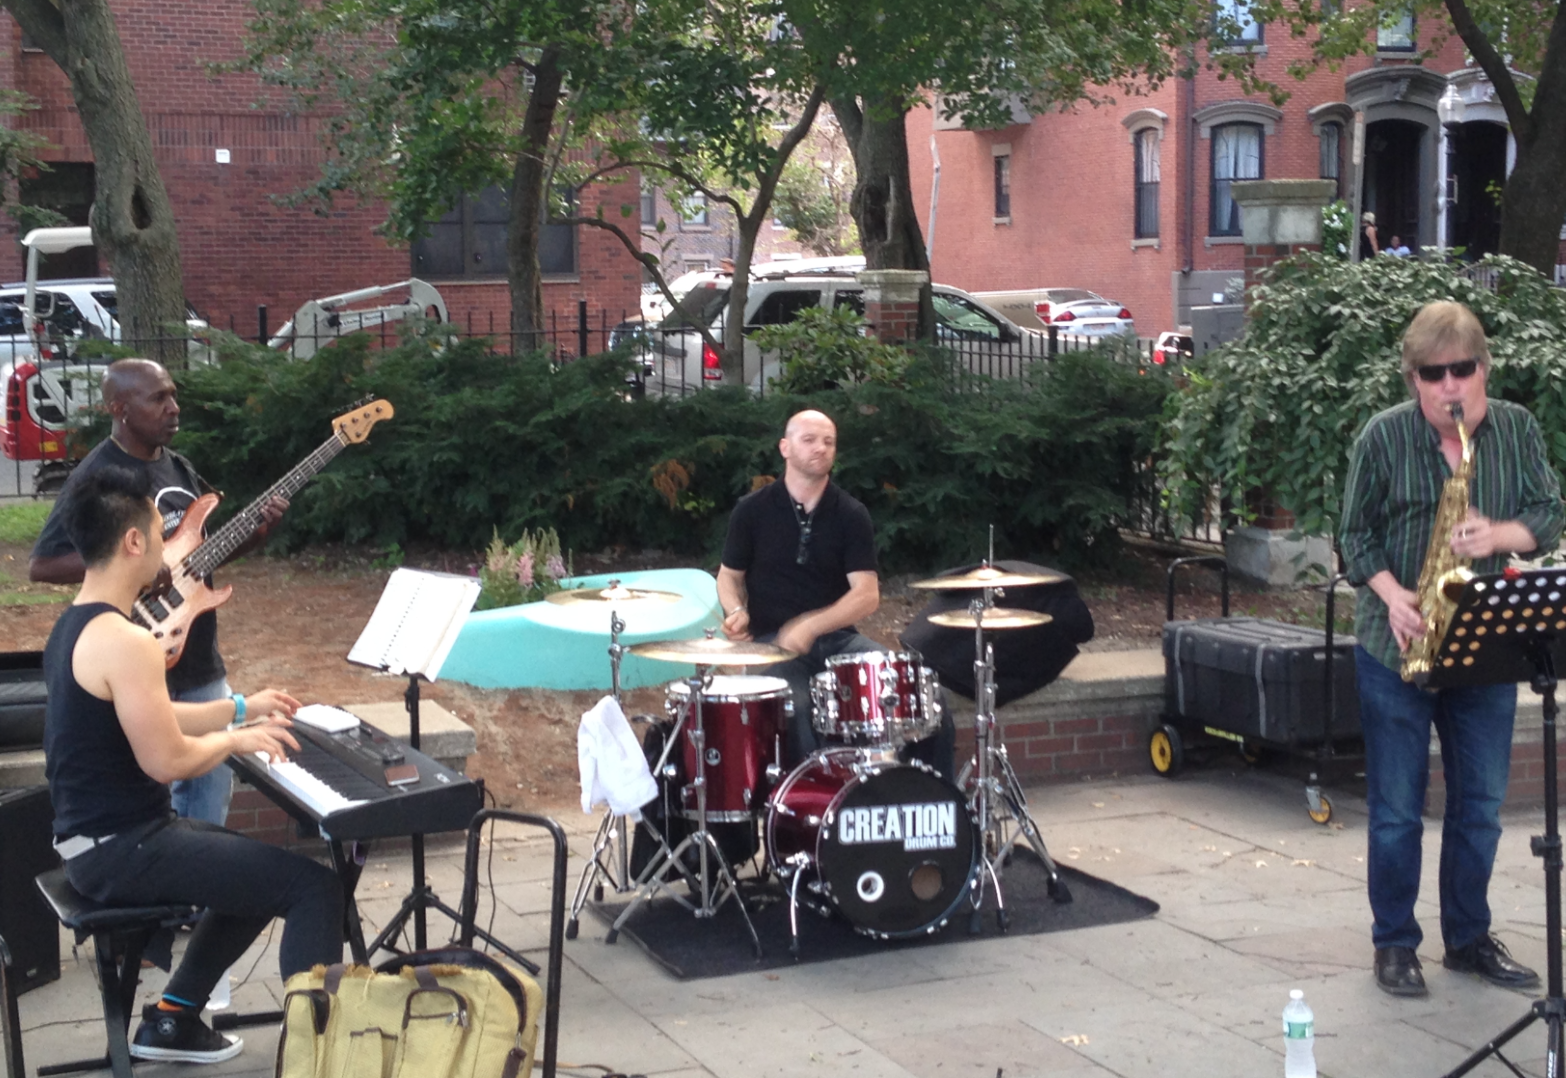 Pst Loomis and his friends playing the first concert in Library Park this summer in July 2015